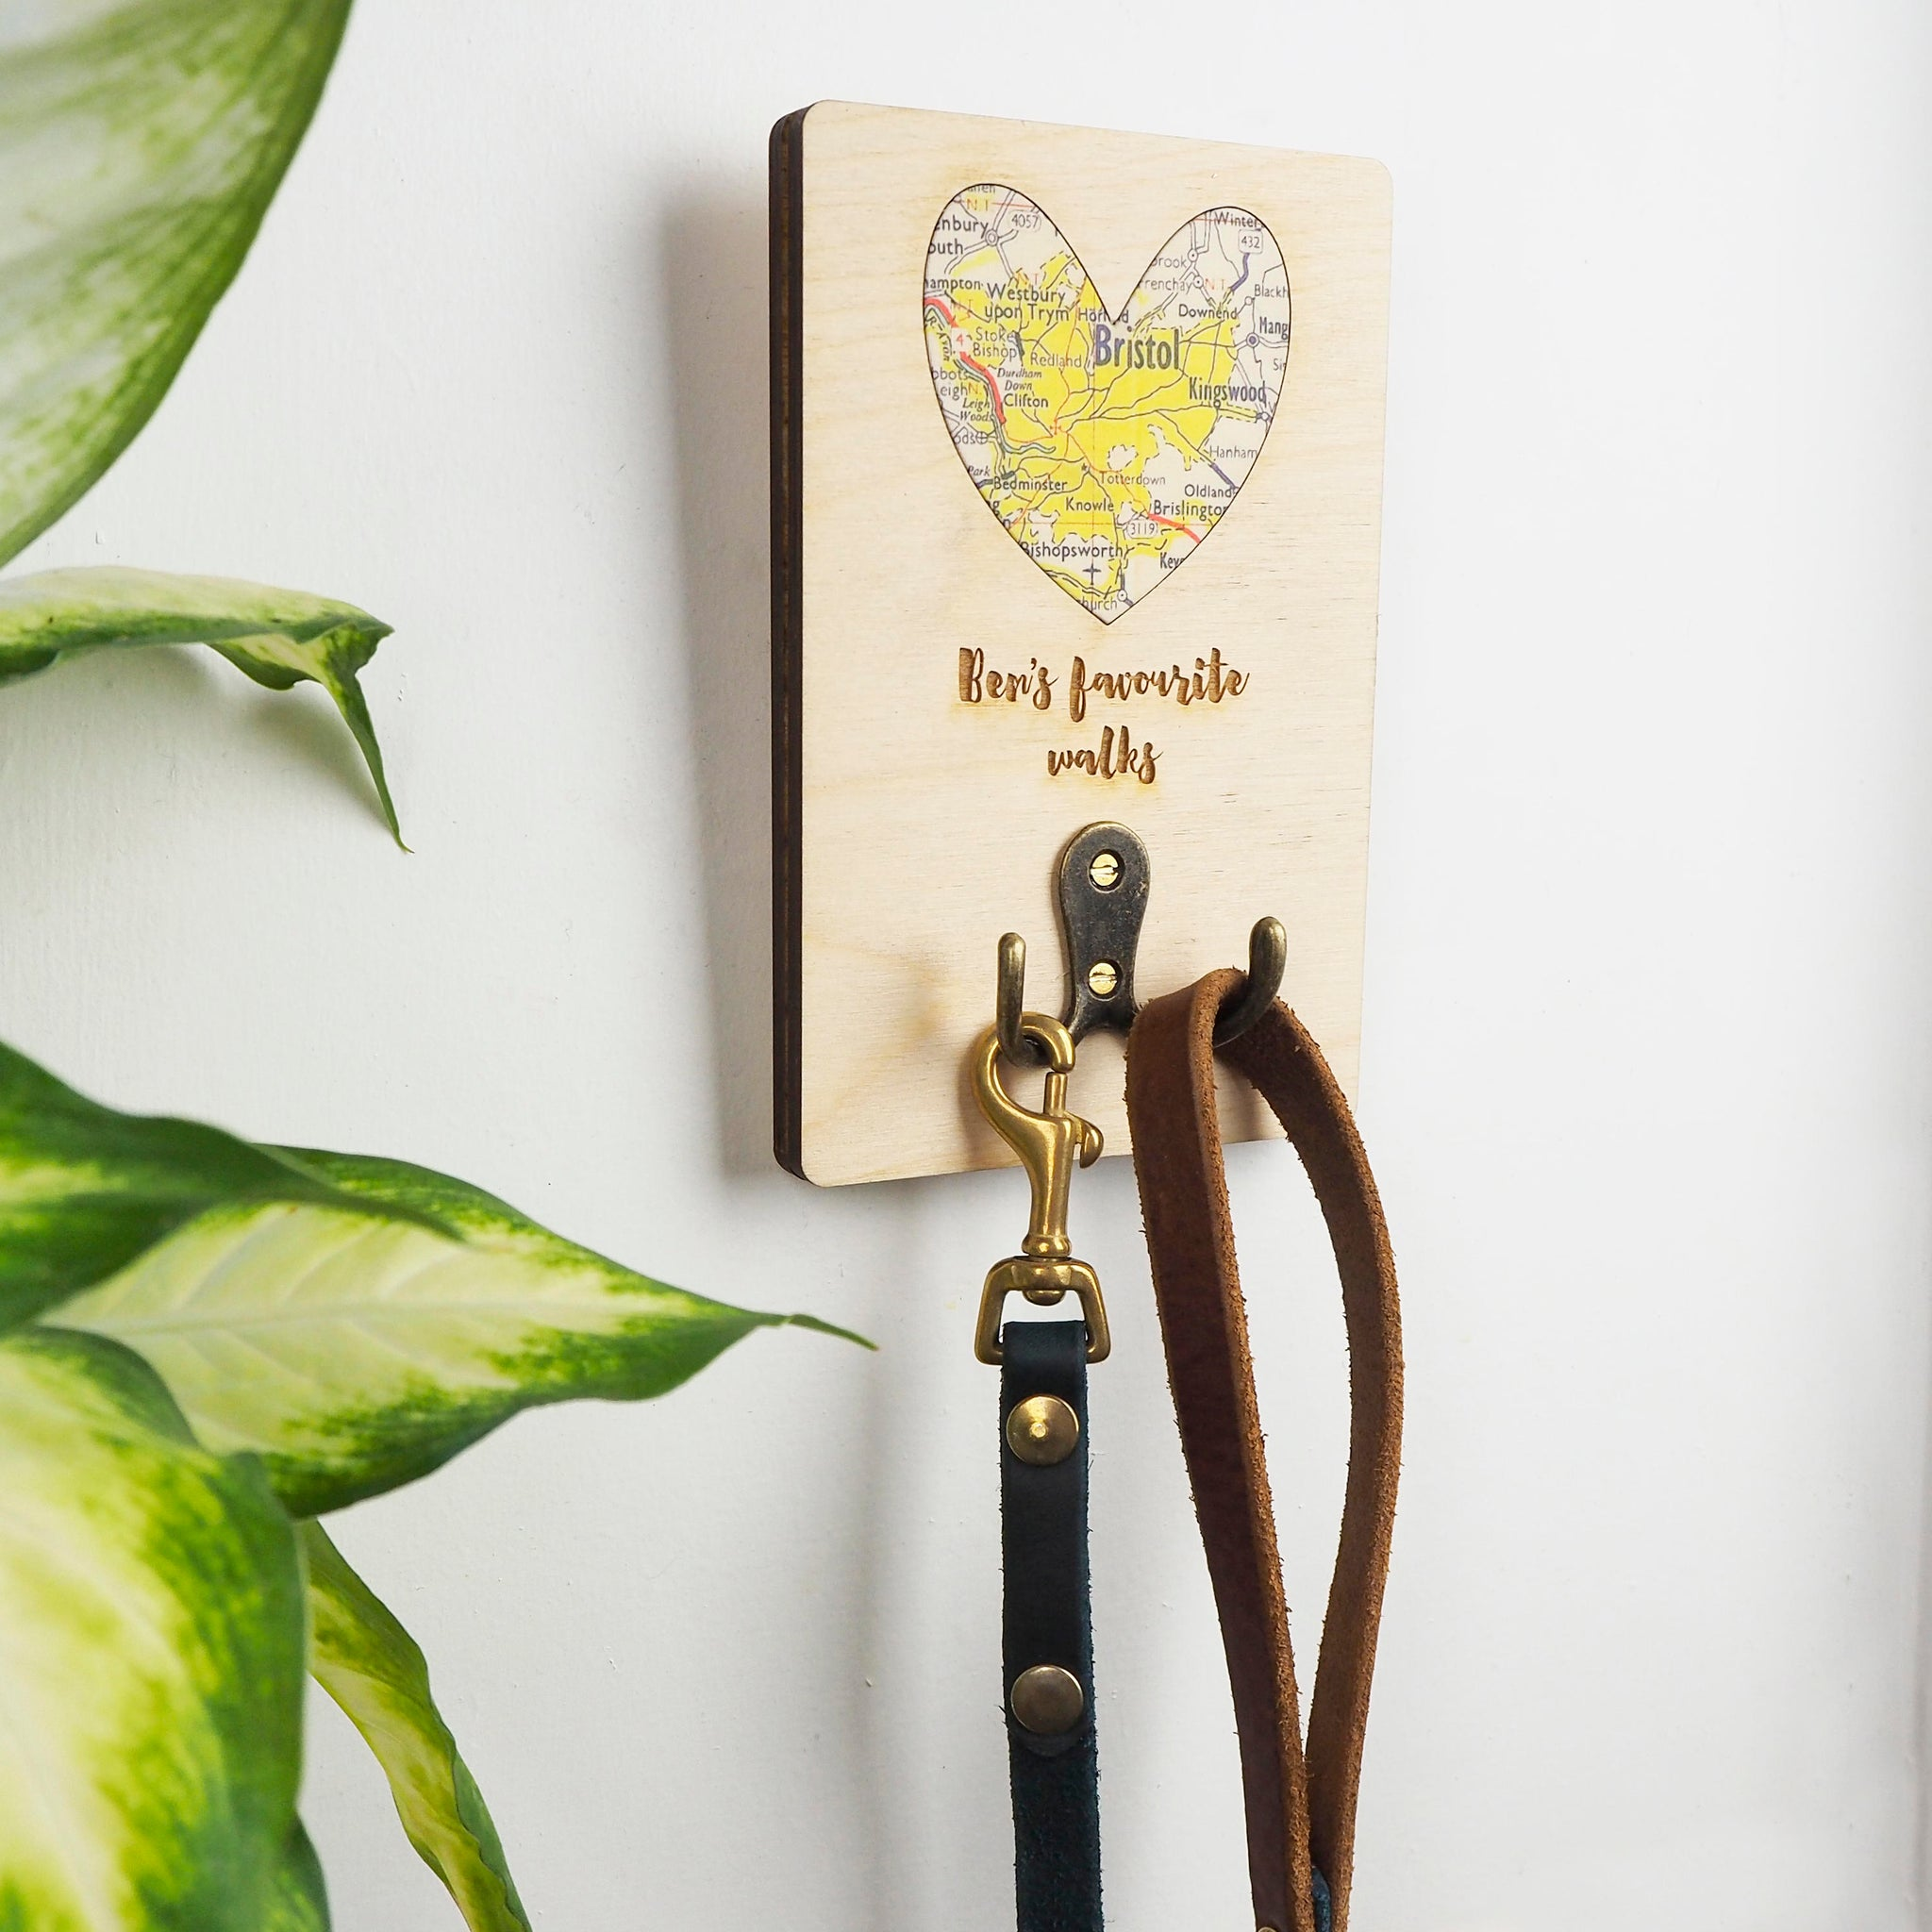 Dog lead hook with personalised map and text